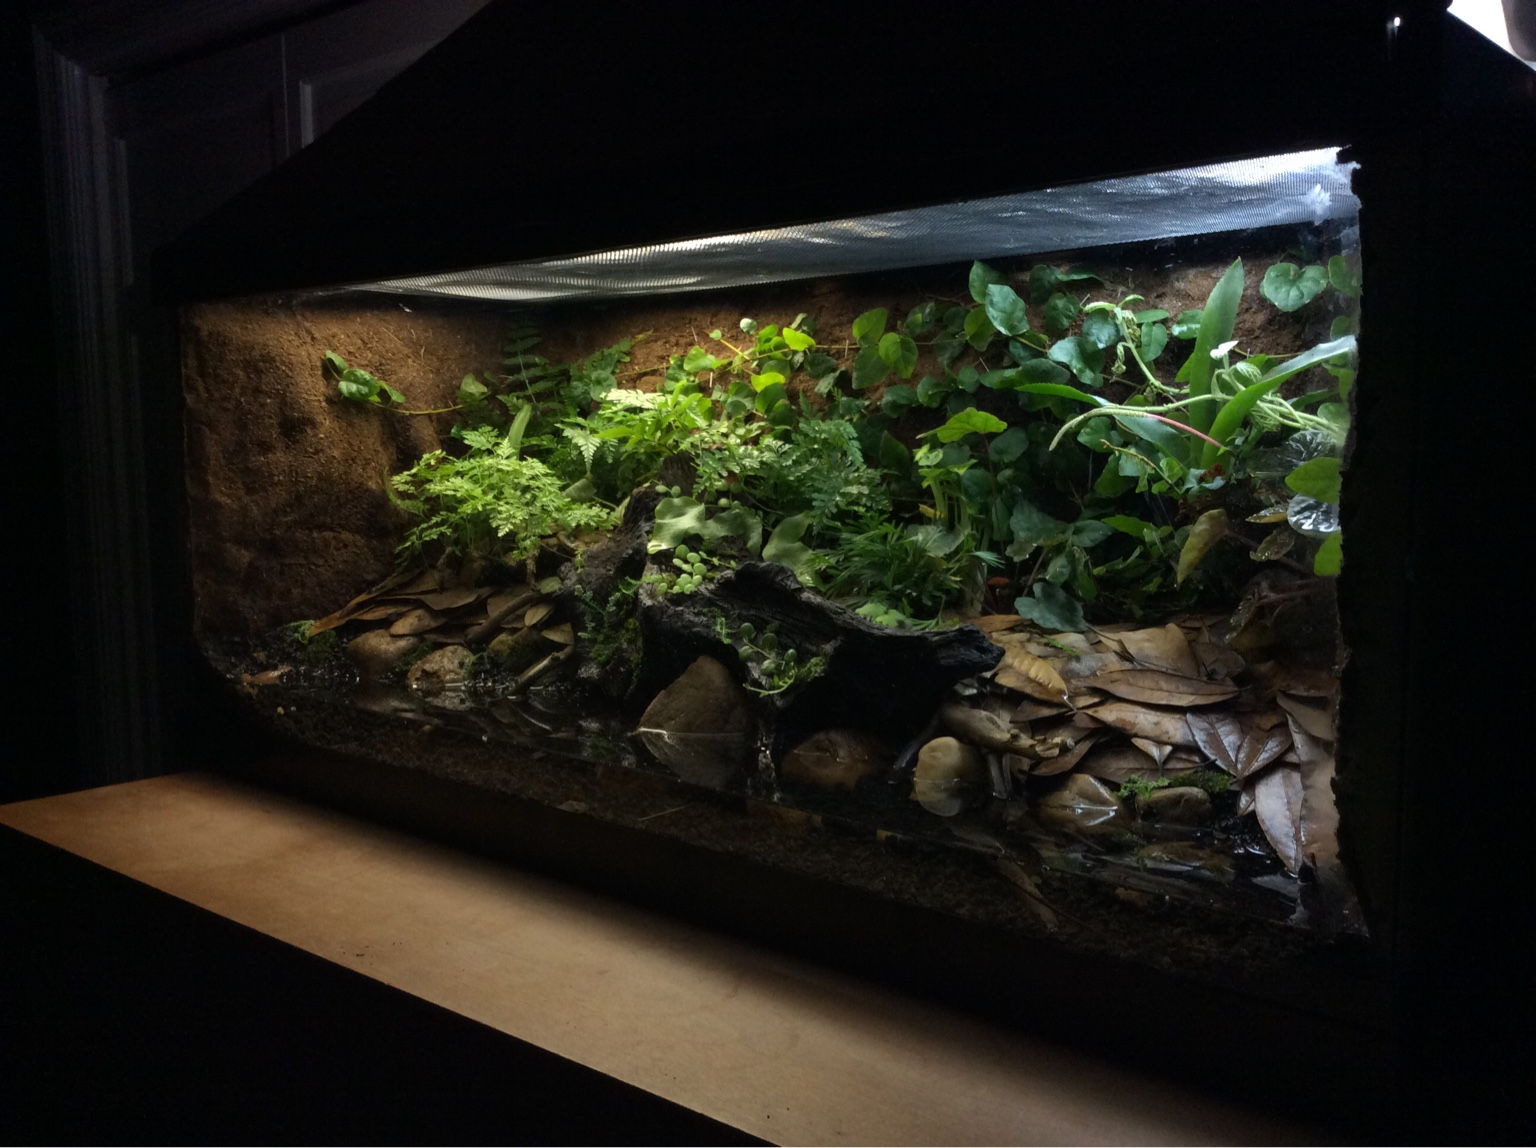 Simple 20 gallon paludarium - Dendroboard 10 Gallon Paludarium